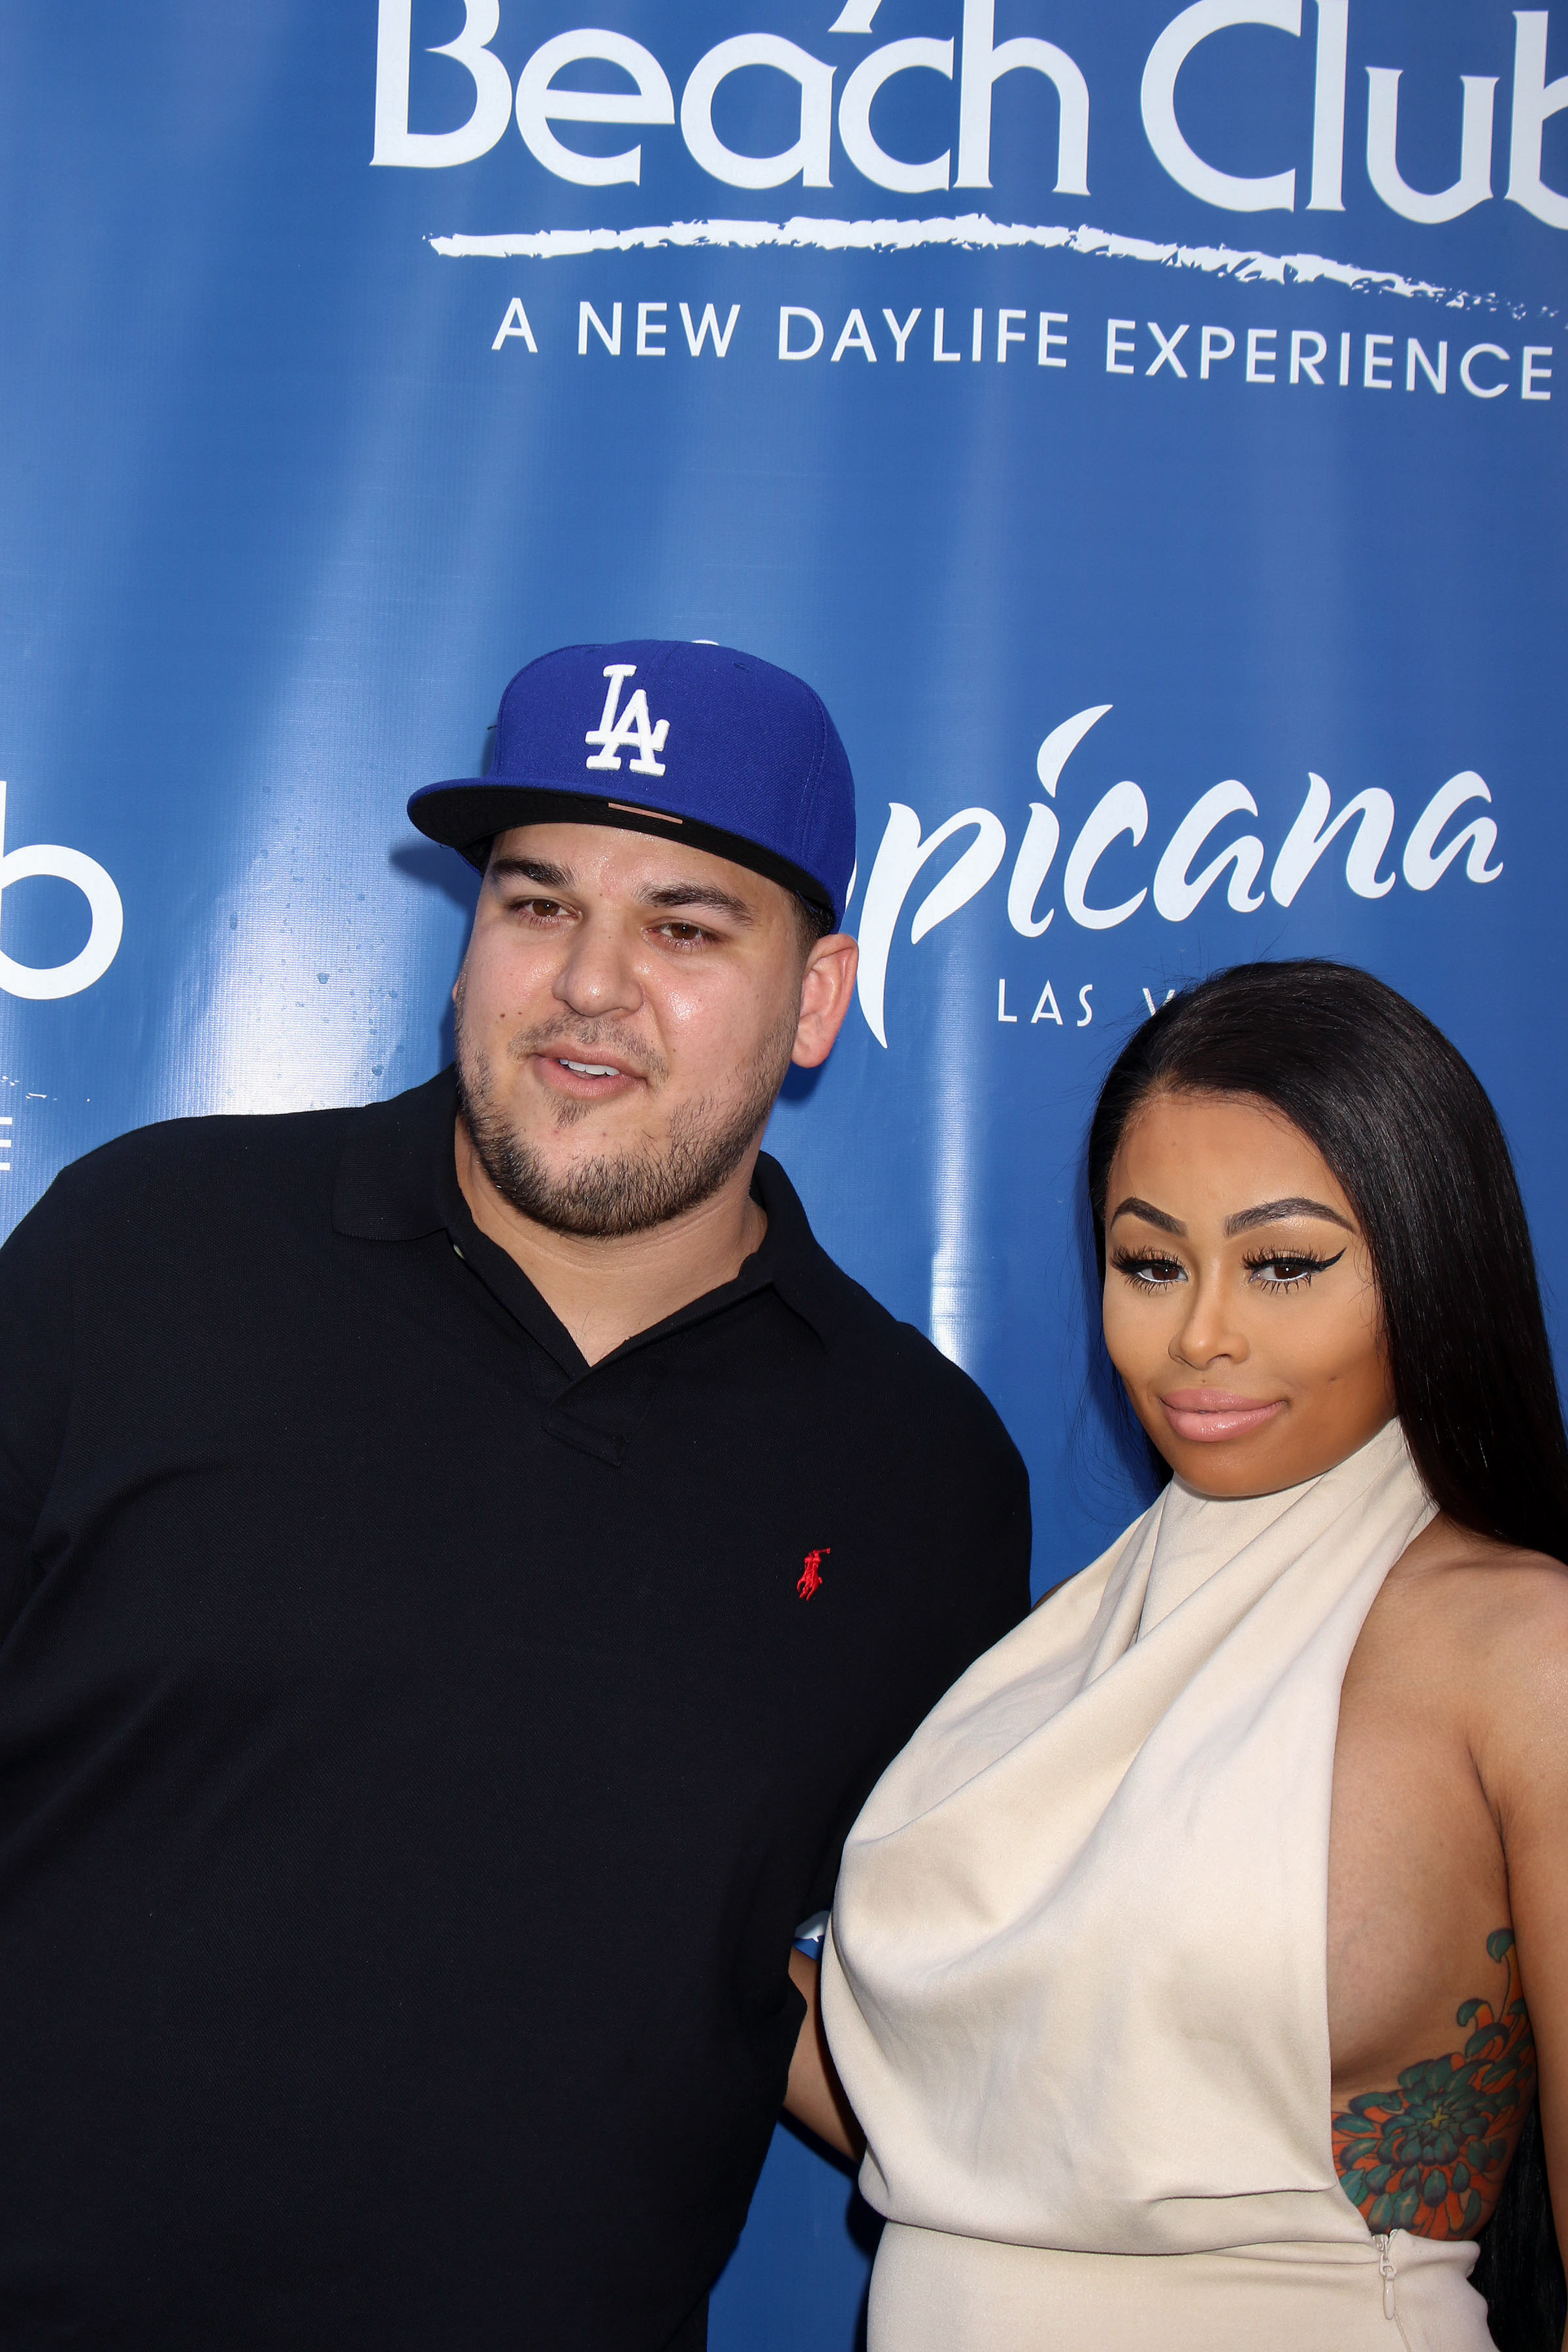 Rob Kardashian Reveals He Was Forced To Hire Security To Protect Himself Following Blac Chyna's 'Violent Attack'